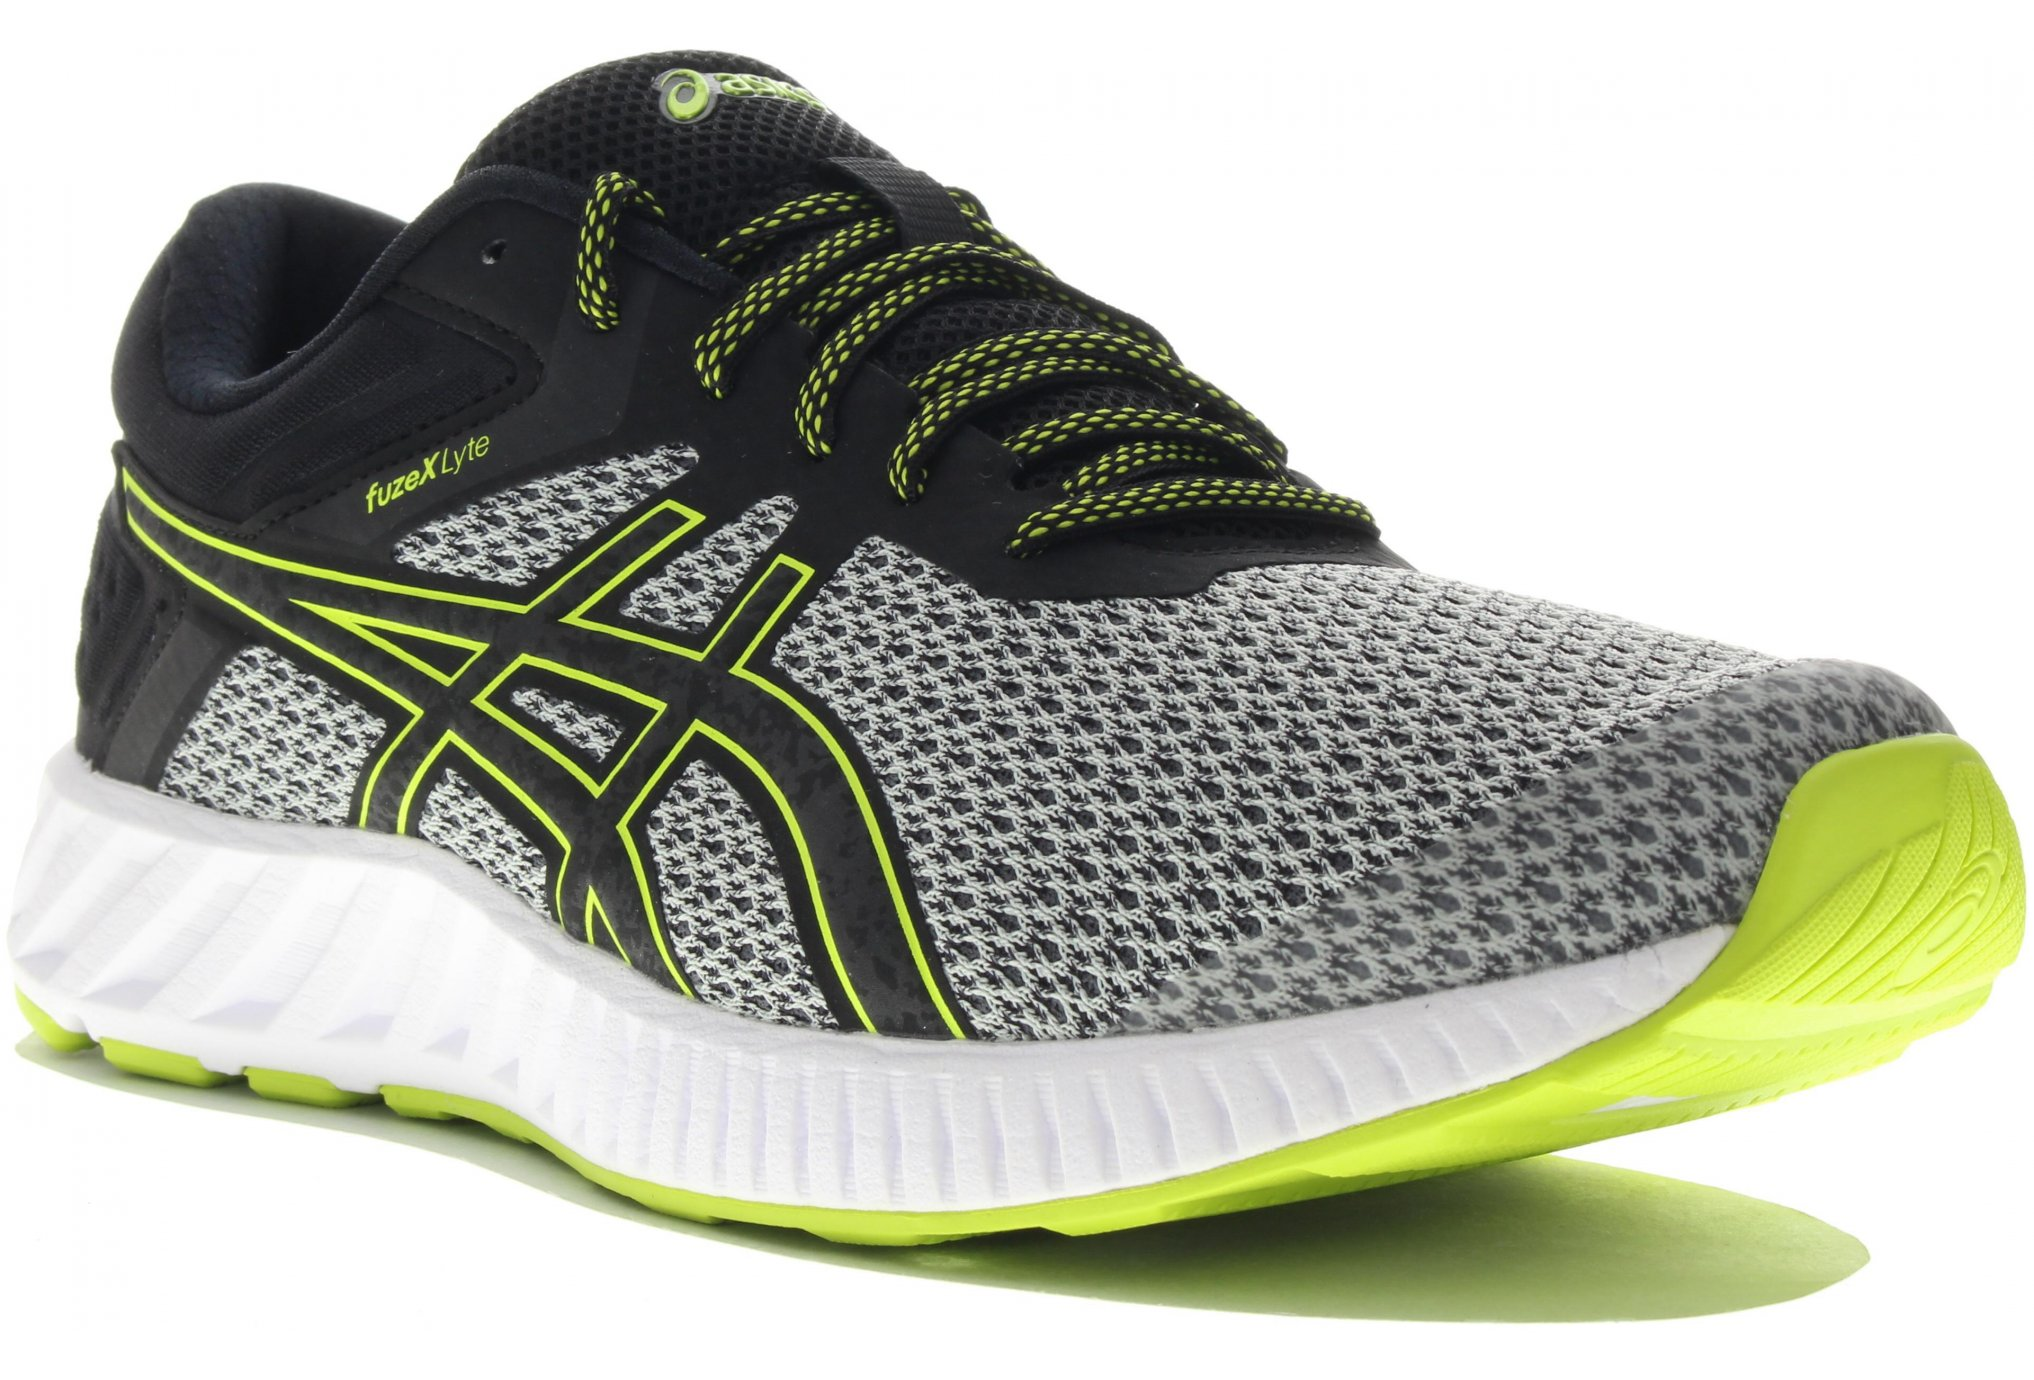 Asics Fuzex lyte 2 m chaussures homme